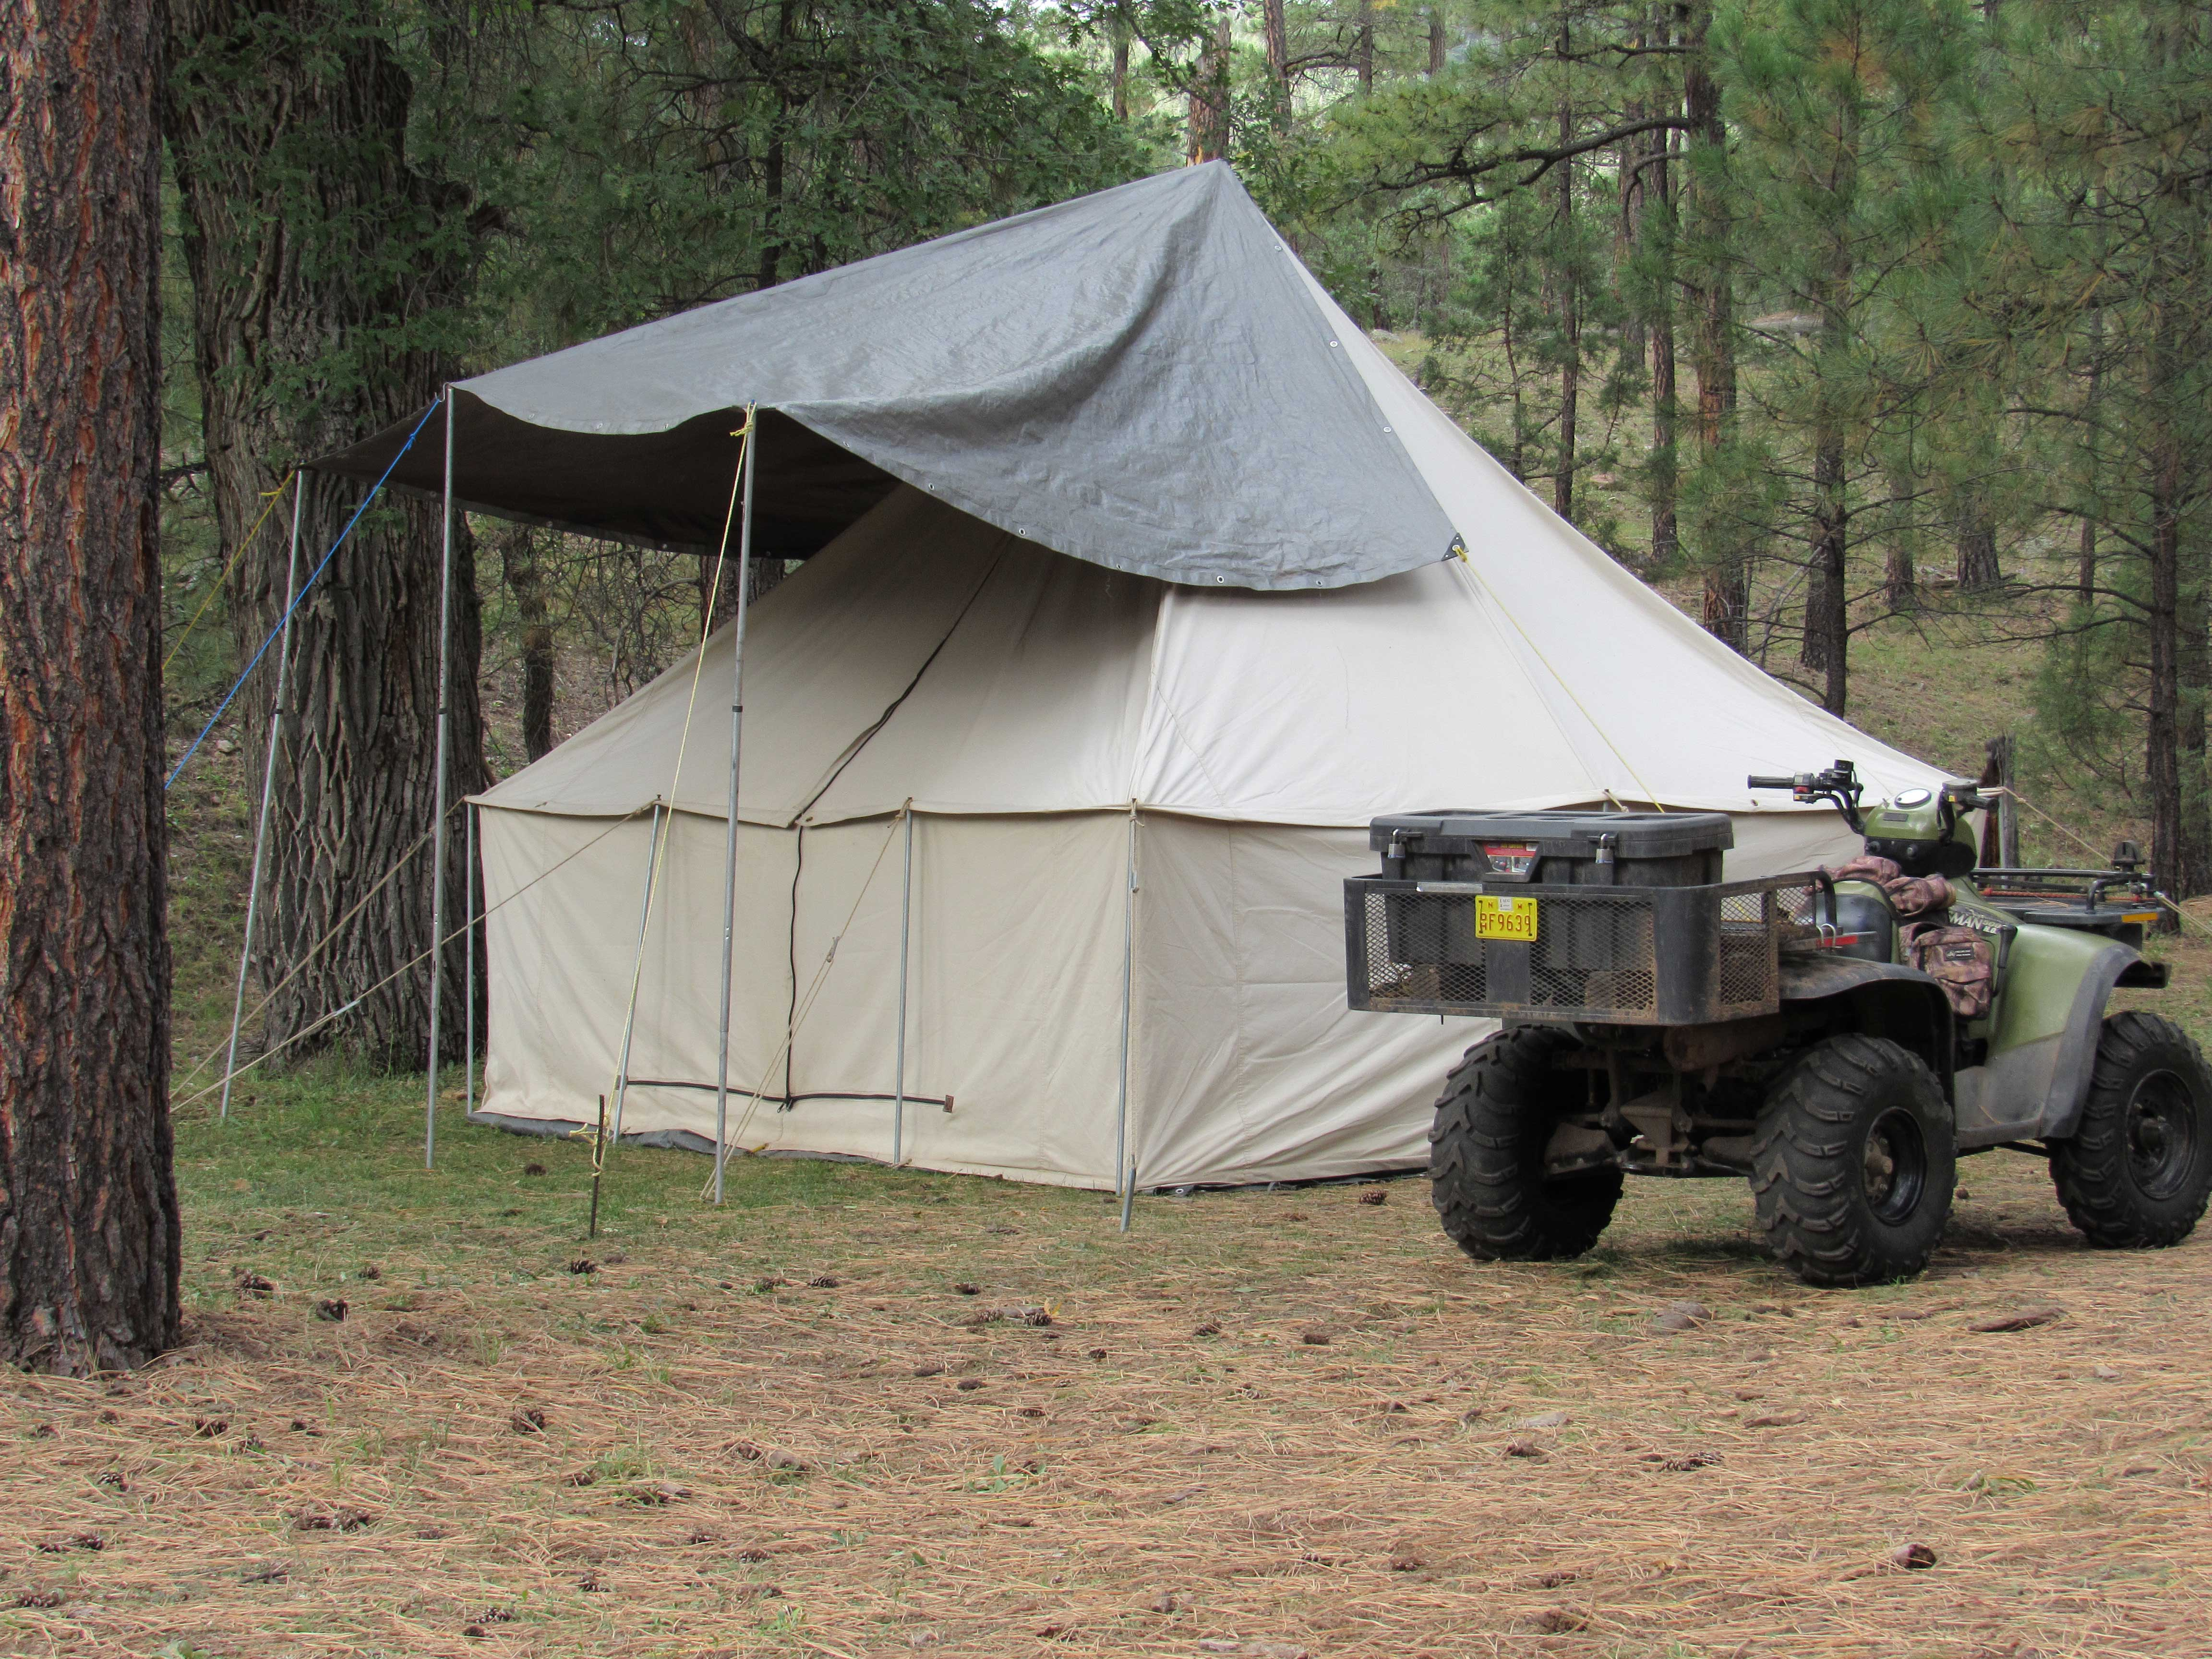 Elk Hunting Tent - What are the top 3 things to consider